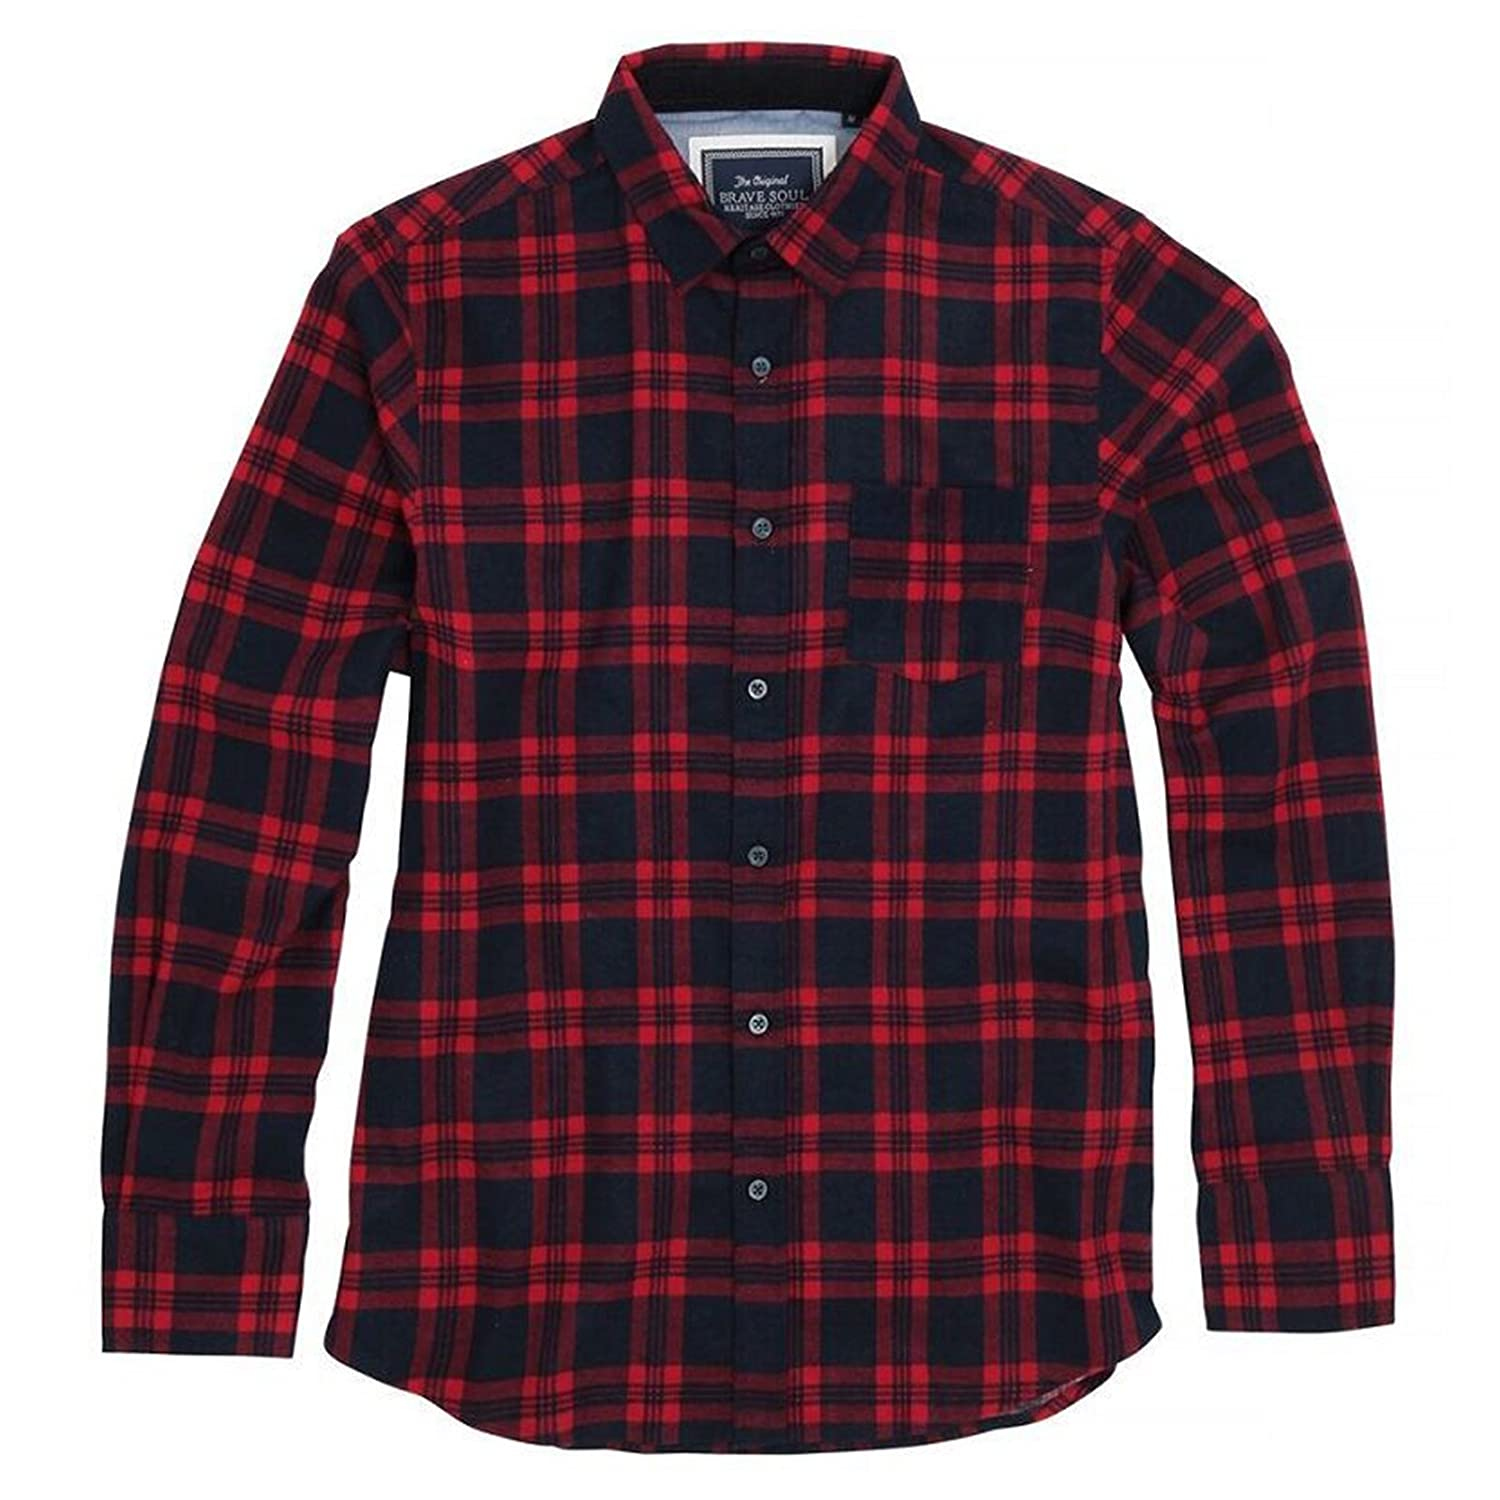 8dfa5a1cf3707 Brave Soul Mens Check Shirt Slater Long Sleeve Soft Brushed Cotton with  Classic Point Collar and Chest Pocket  Amazon.co.uk  Clothing